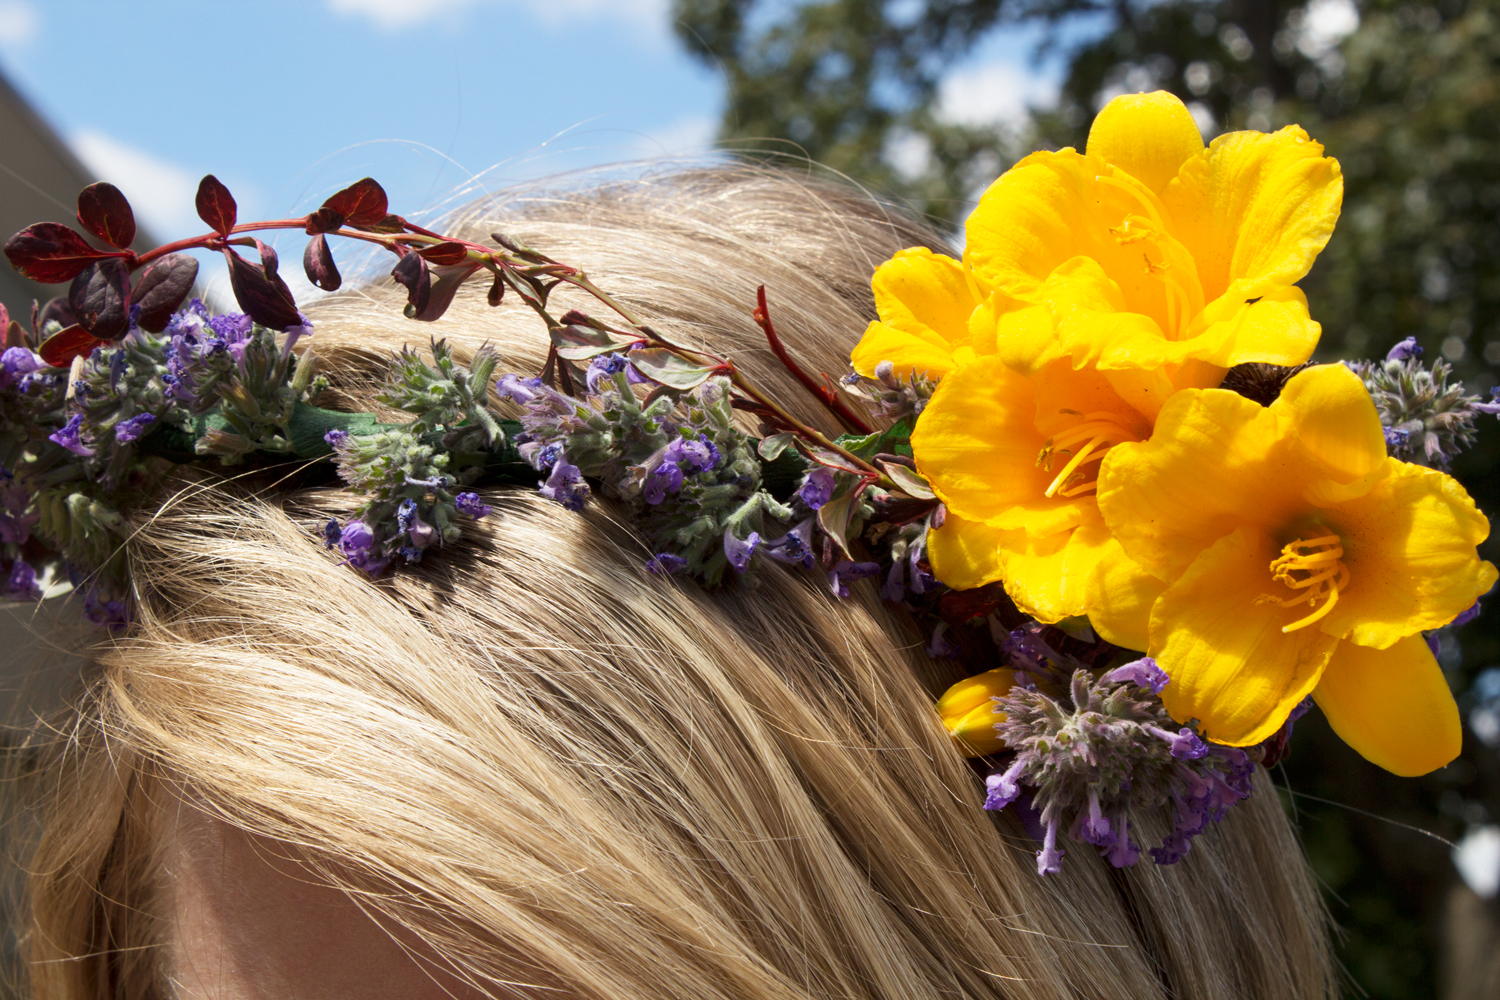 hippie flower crown 8 - Hippie Flower Crown- DIY Flower Crown Headband